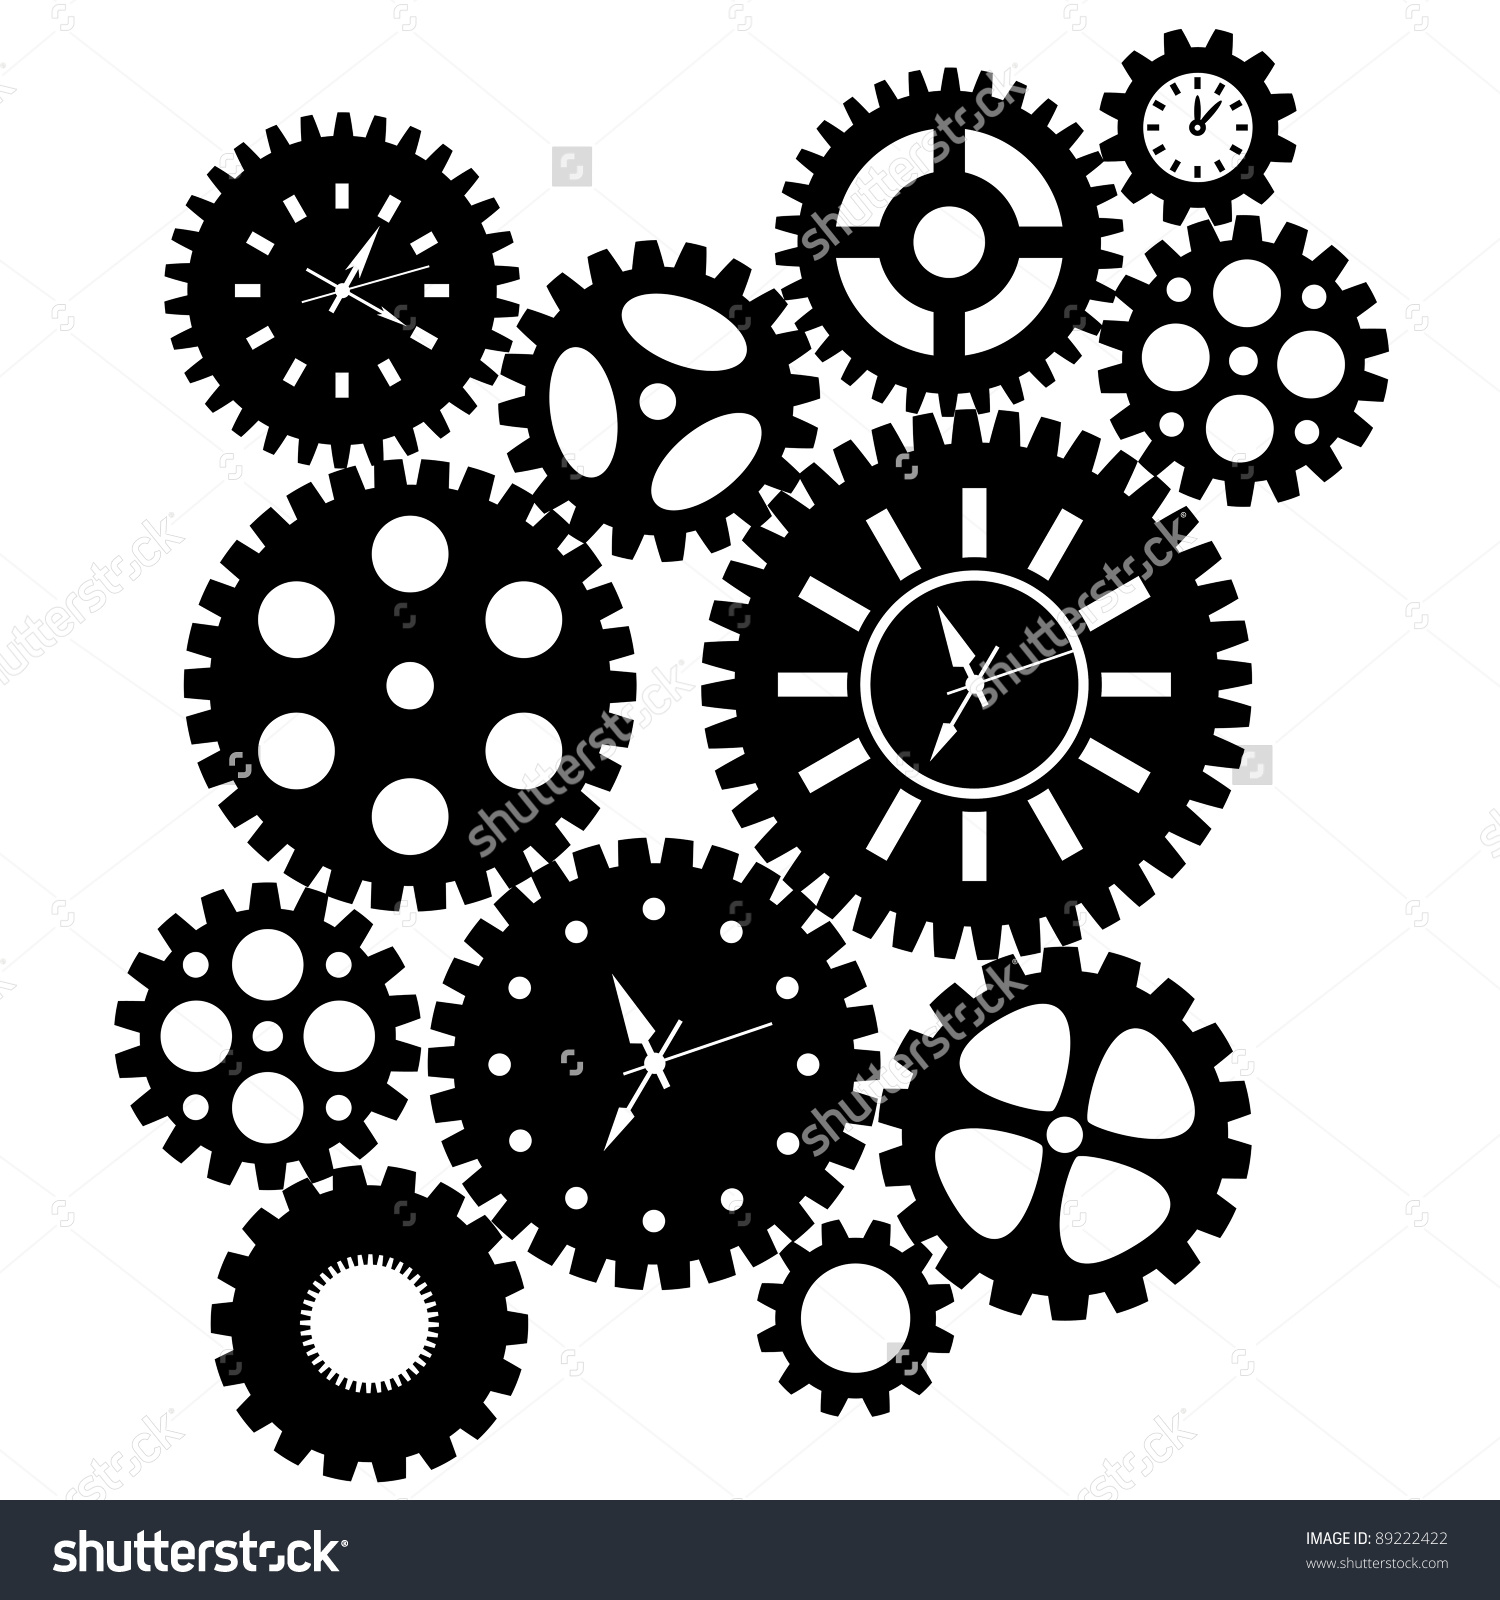 Gears Black And White Clipart.